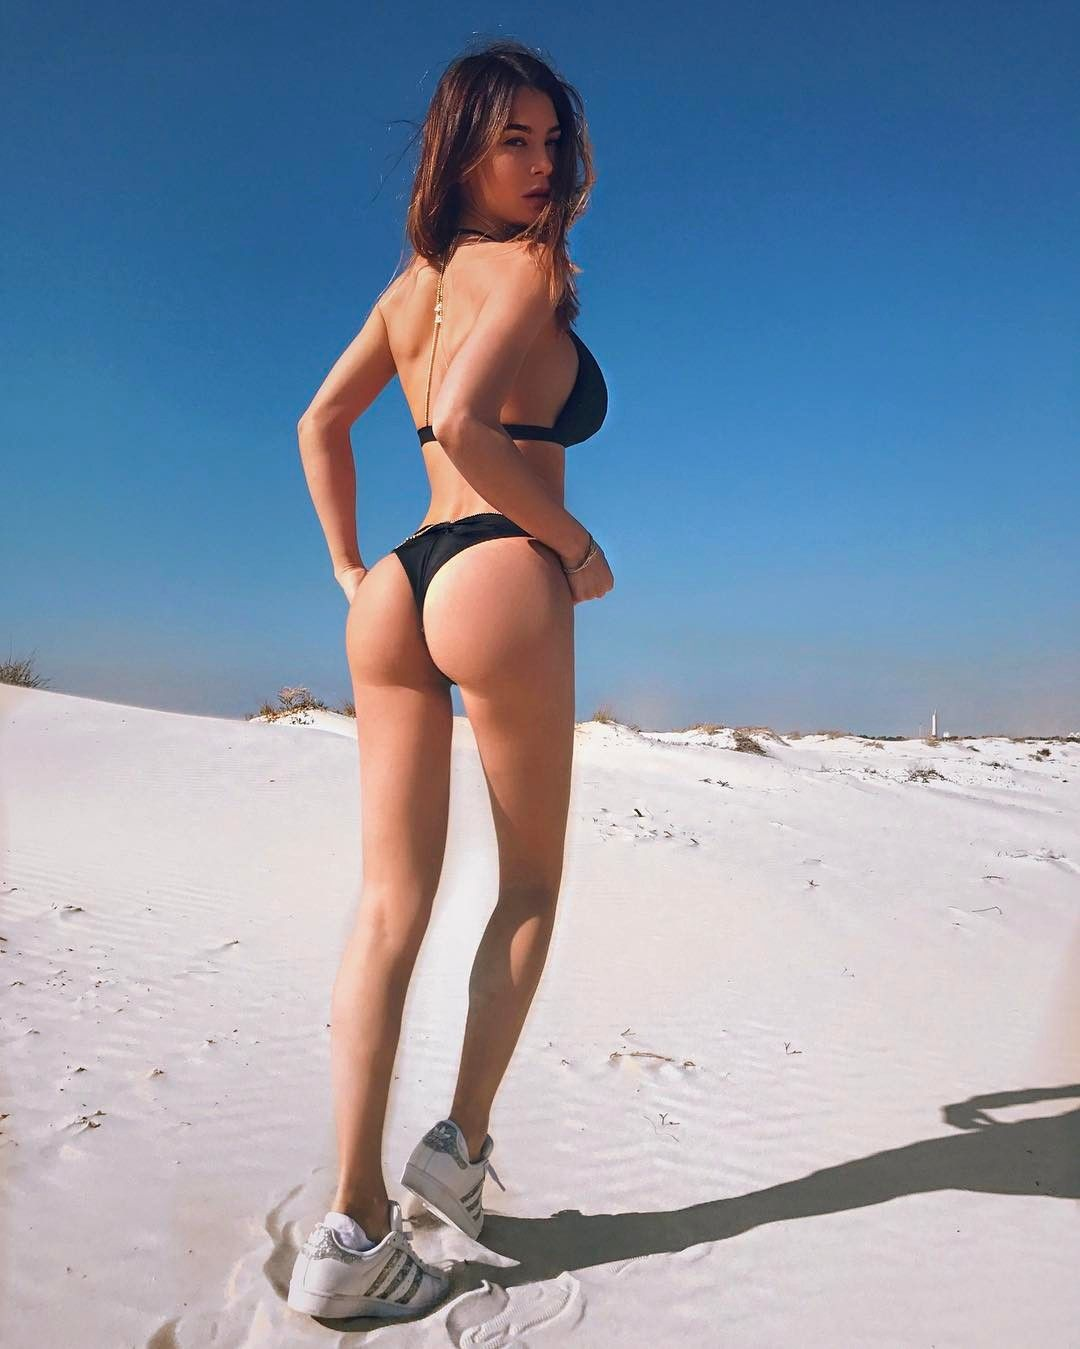 Celebrity Silvia Caruso nudes (16 foto and video), Tits, Sideboobs, Feet, butt 2017